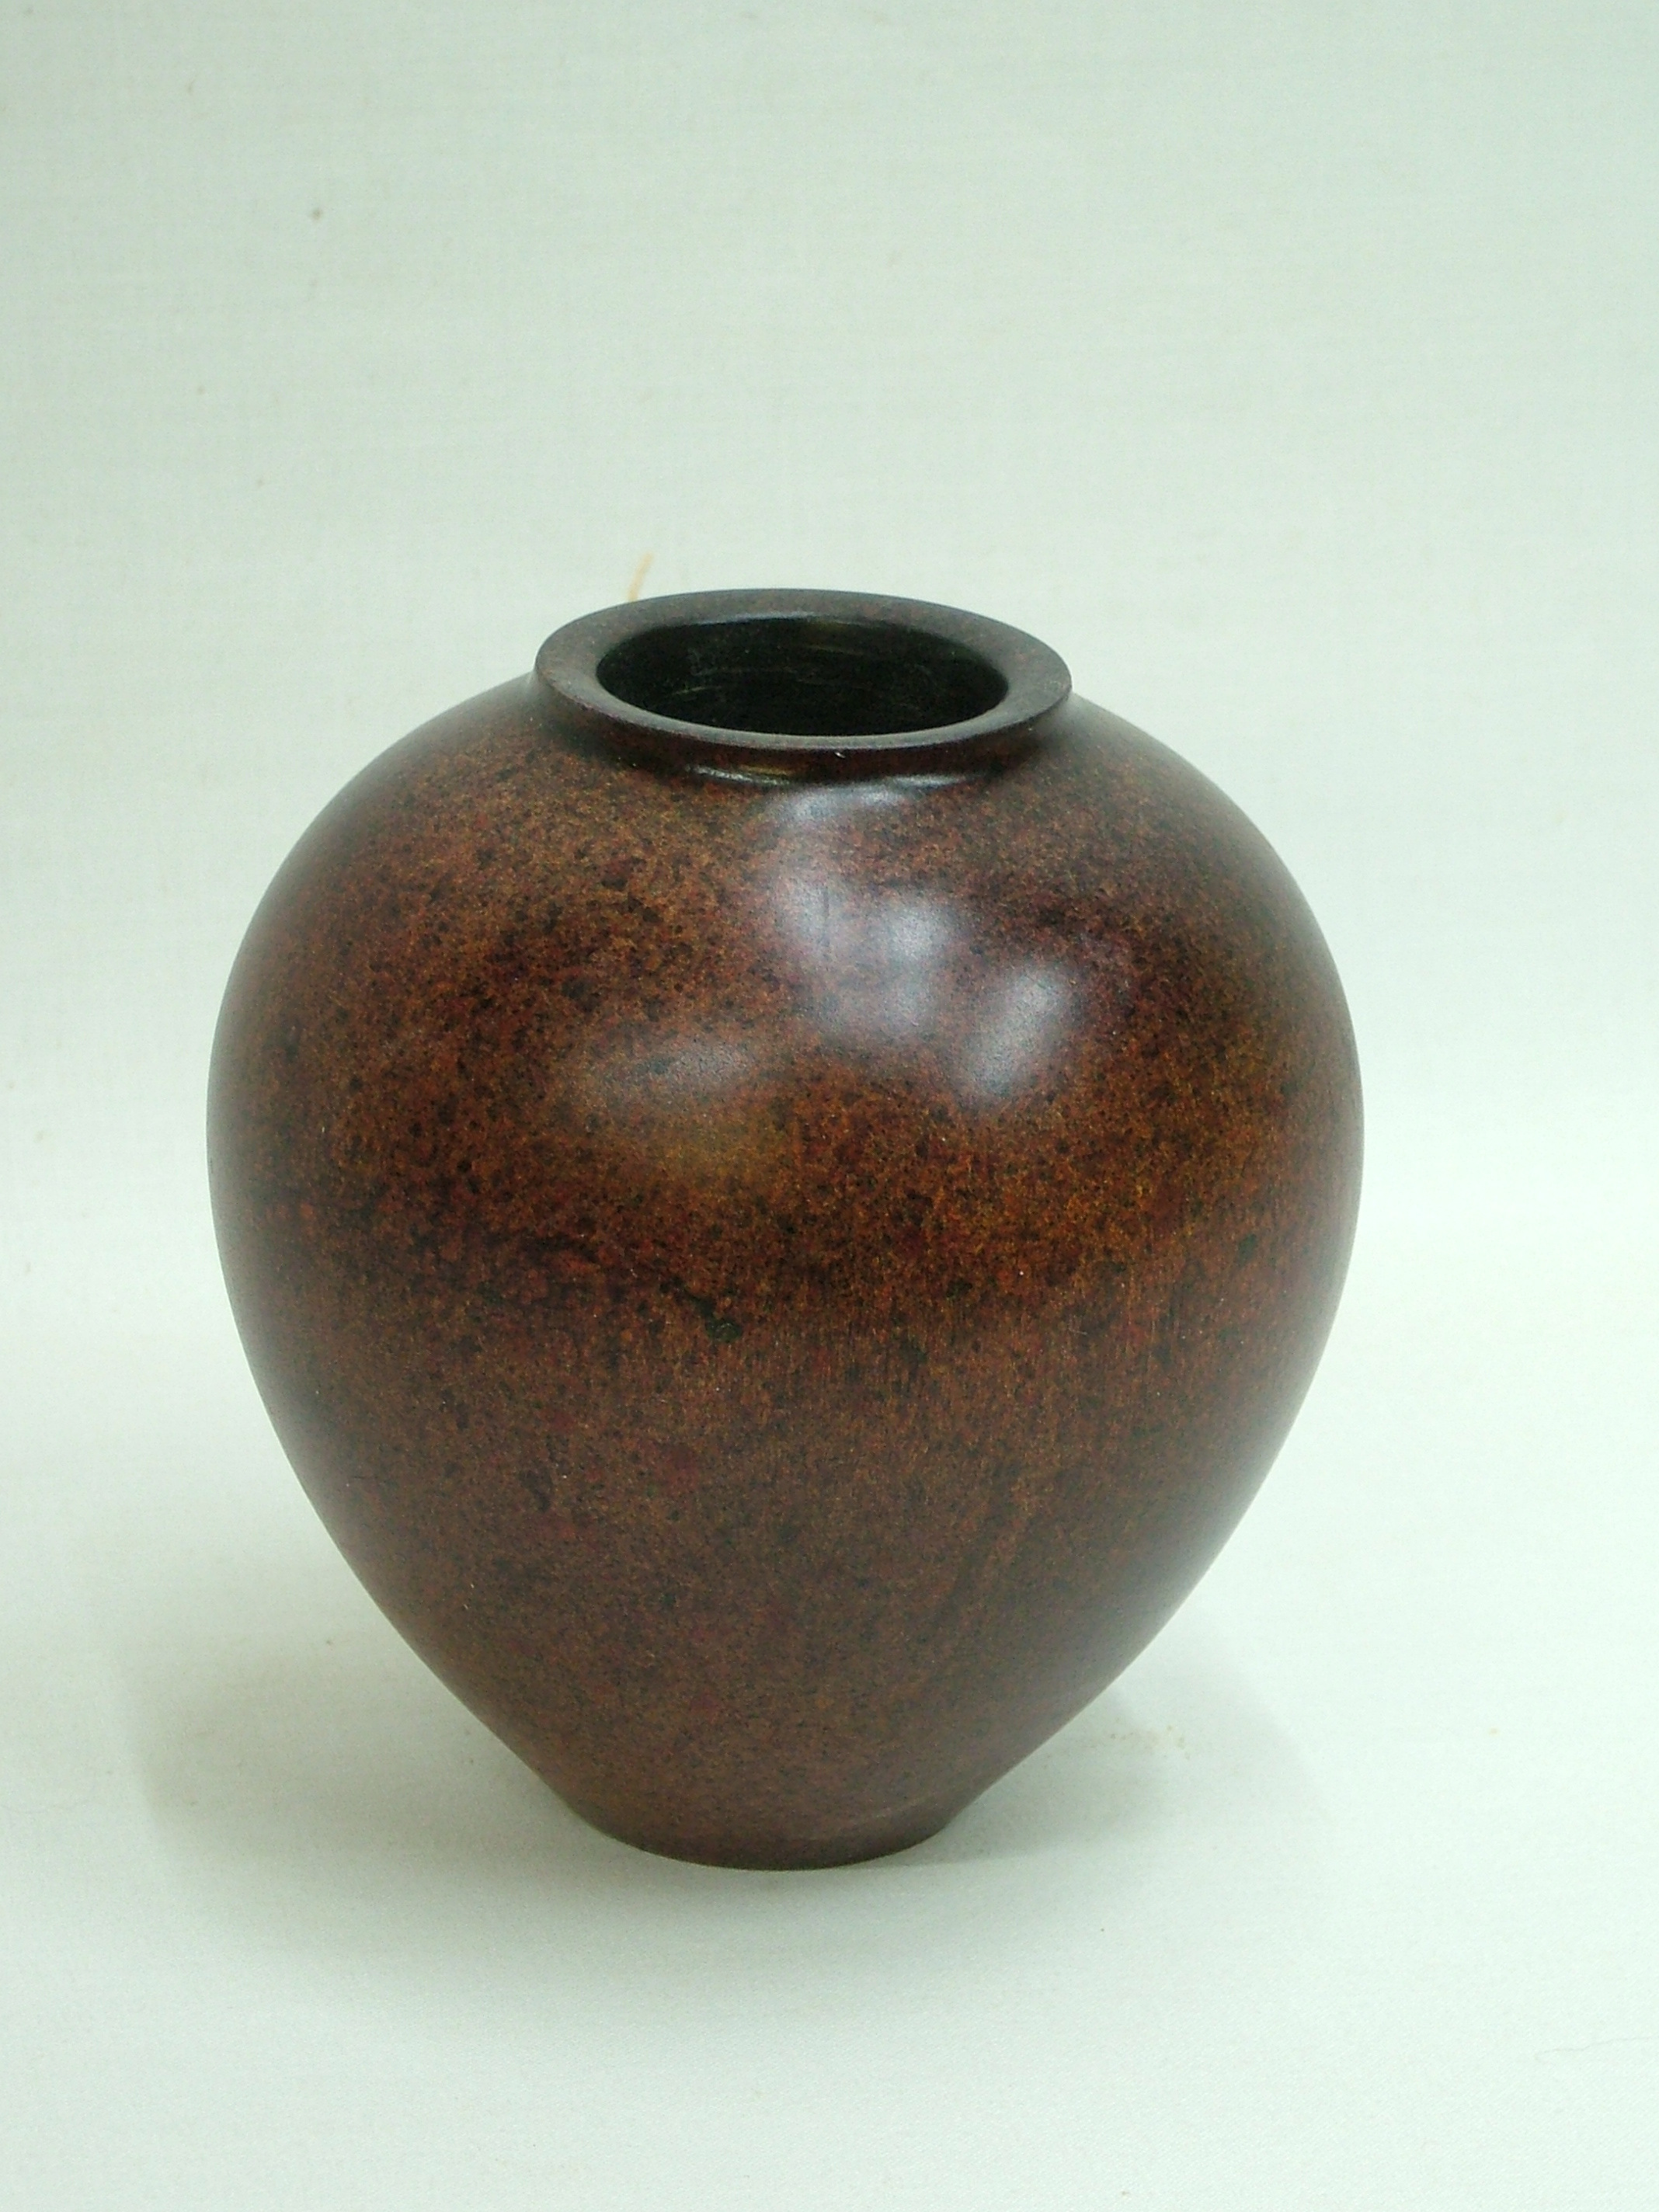 coloured hollow form in sycamore